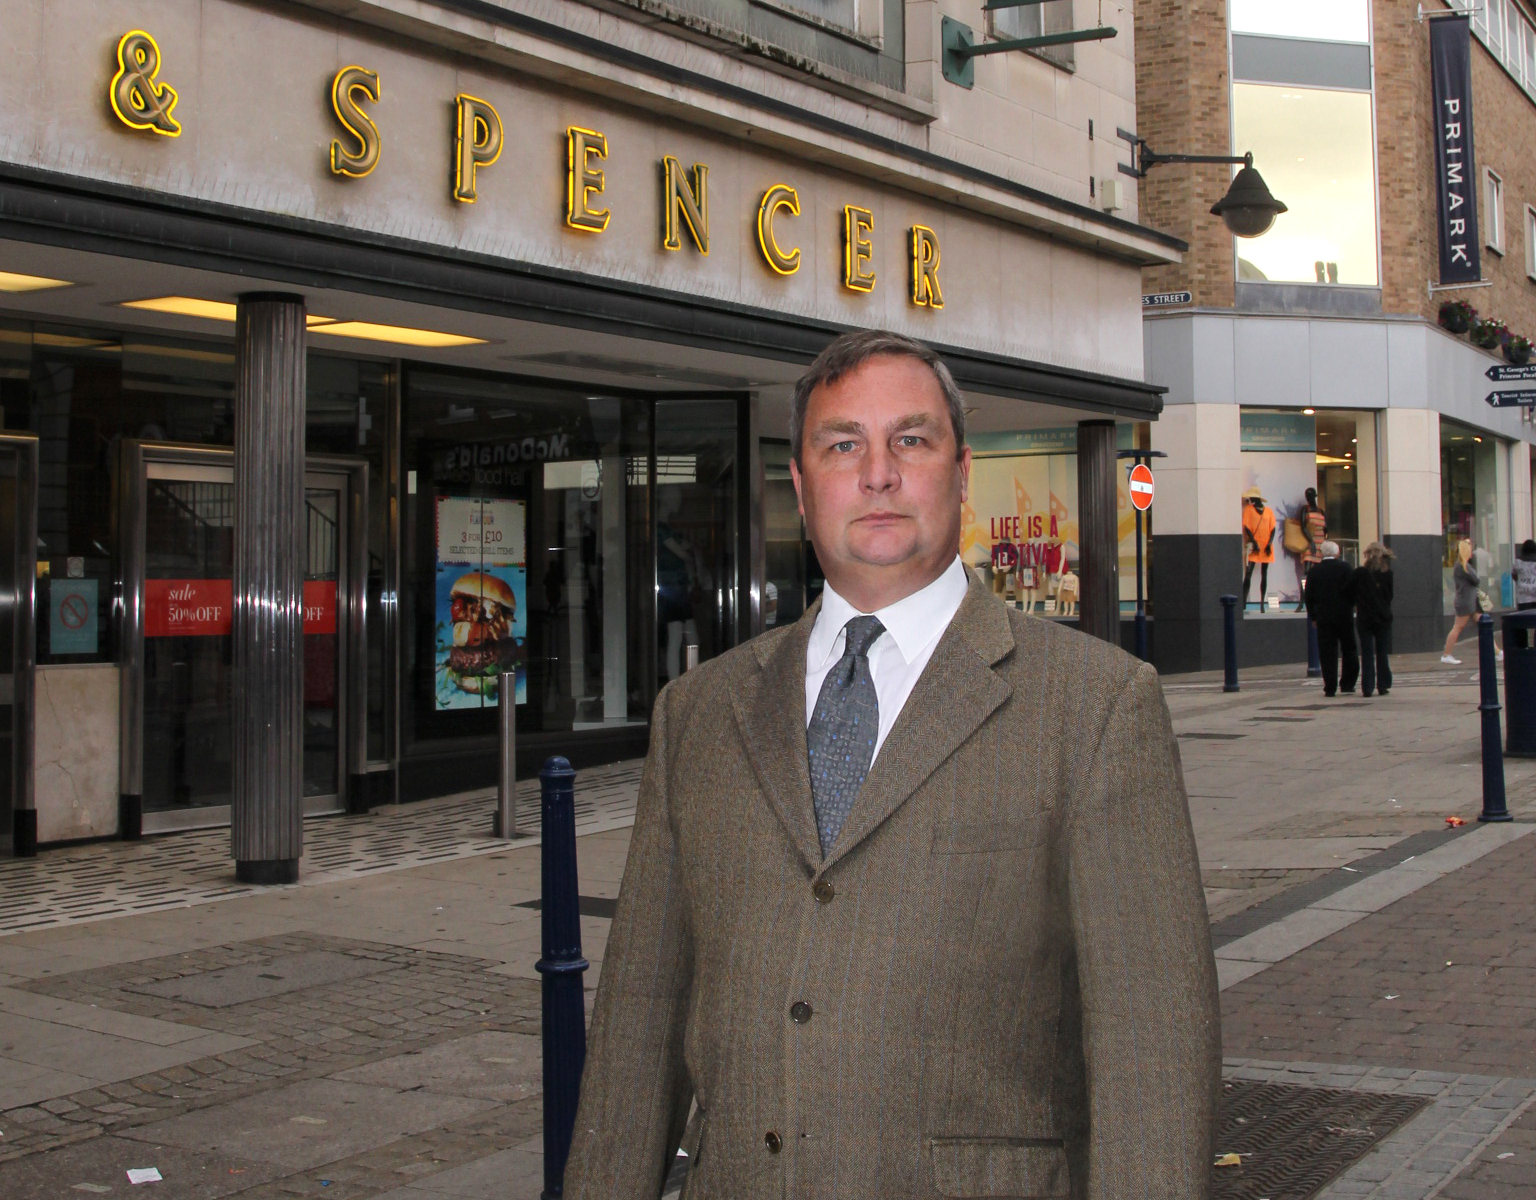 Gravesham Council Leader has 'no sympathy' for M&S over planned closure